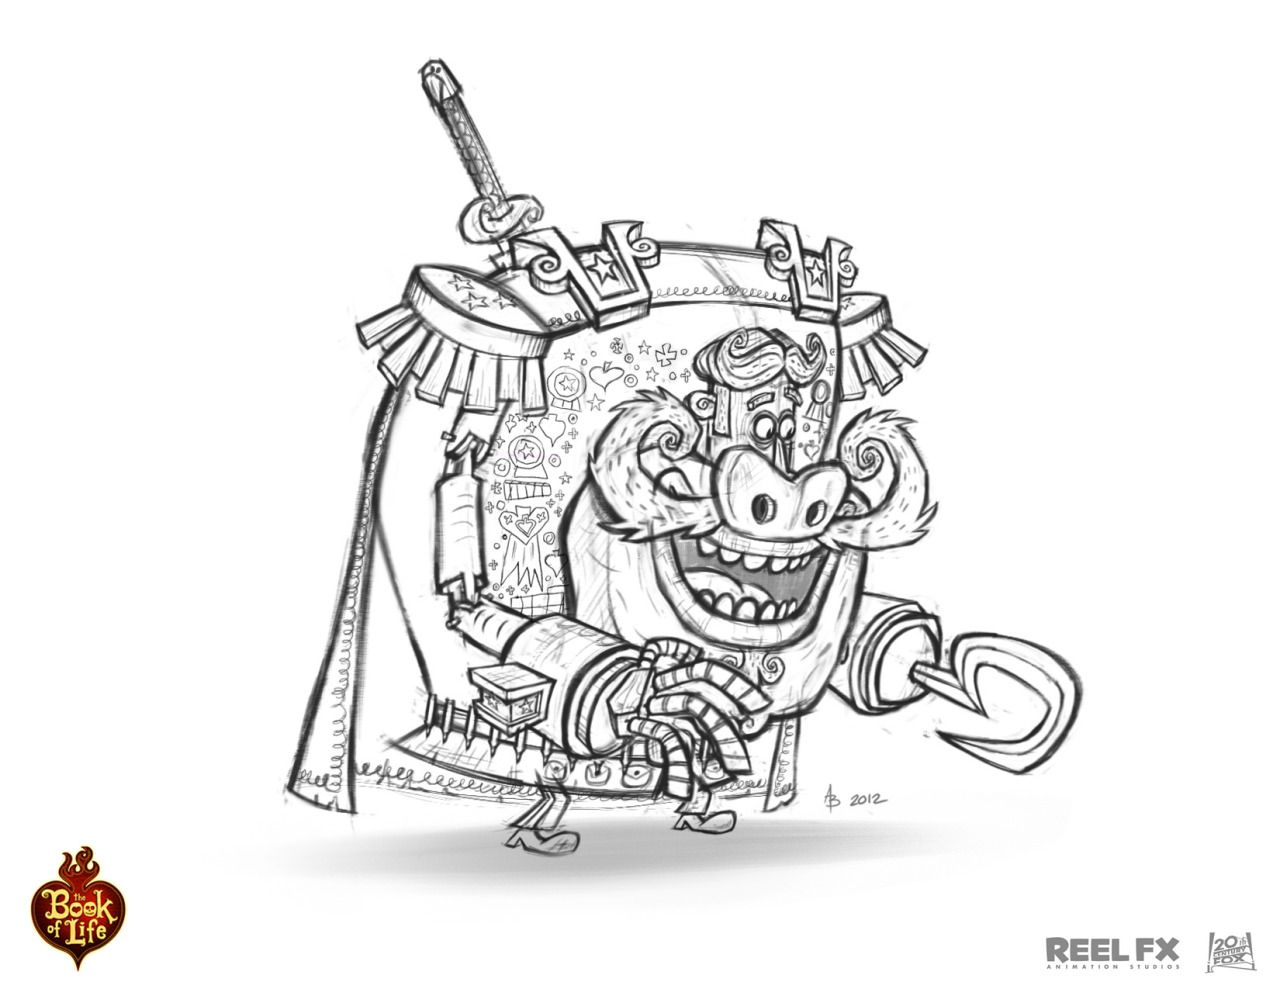 Coloring the book of life -  General Posada Character Design By Jorge R Gutierrez Character Poses By Andy Bialk